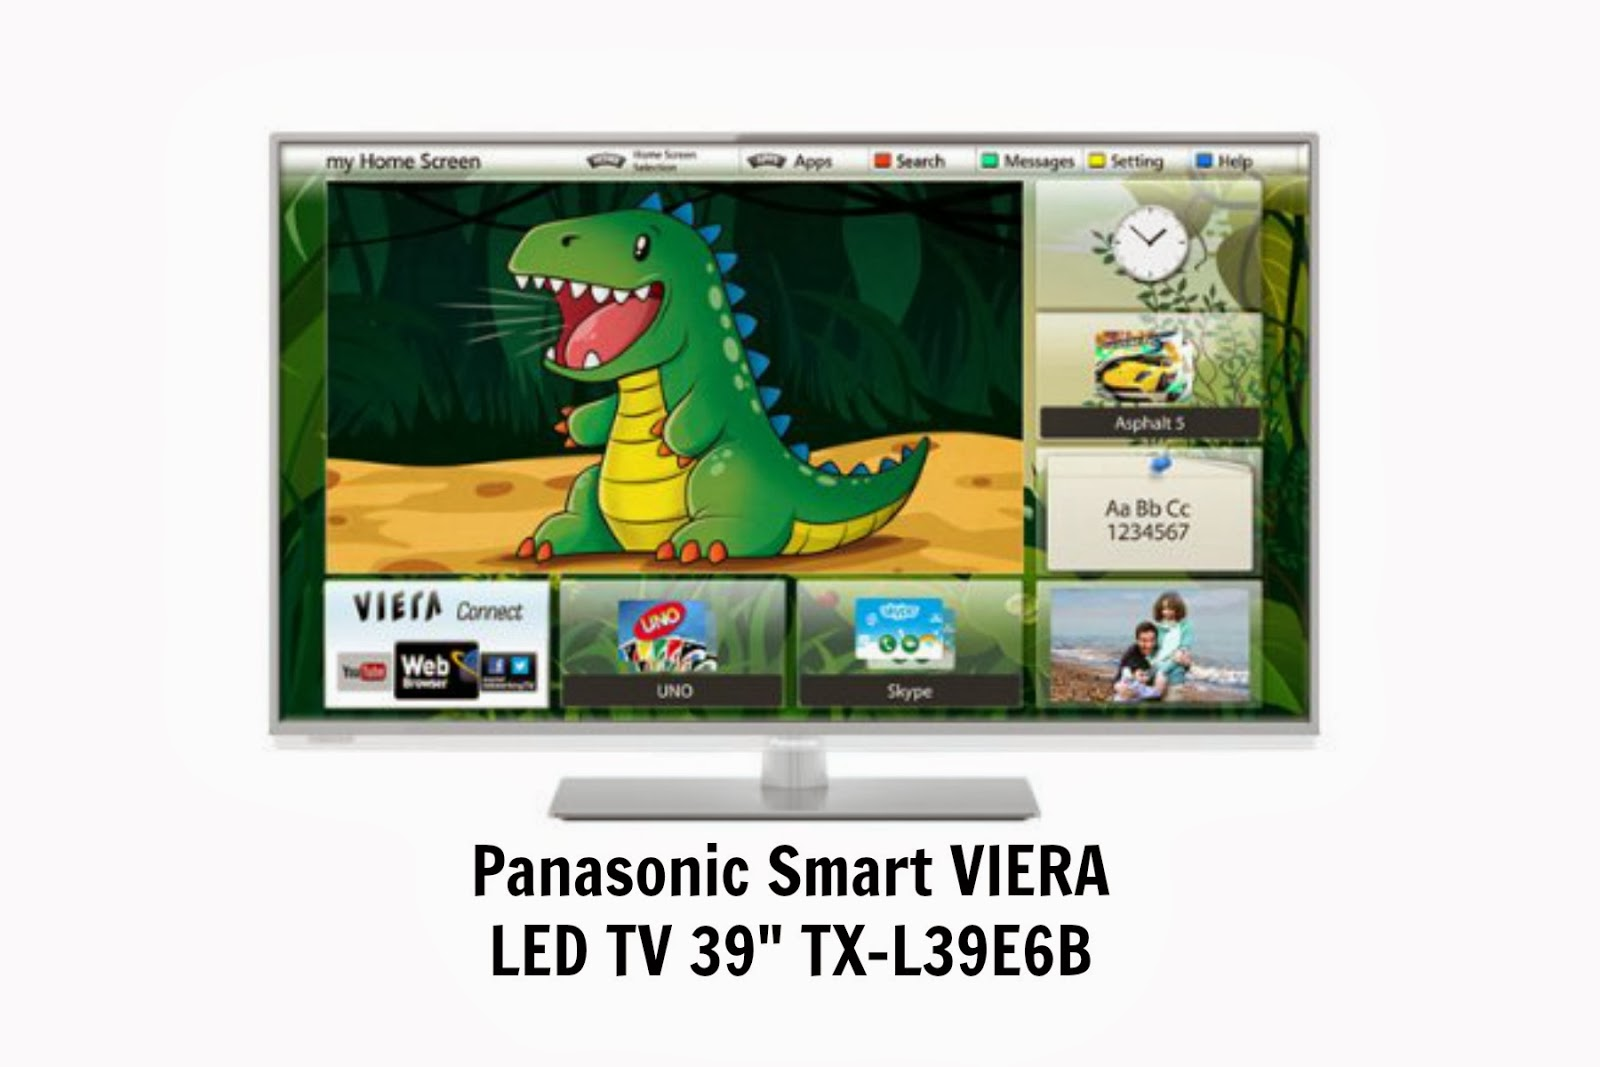 "Panasonic Smart VIERA LED TV 39"" TX-L39E6B {#Review}"